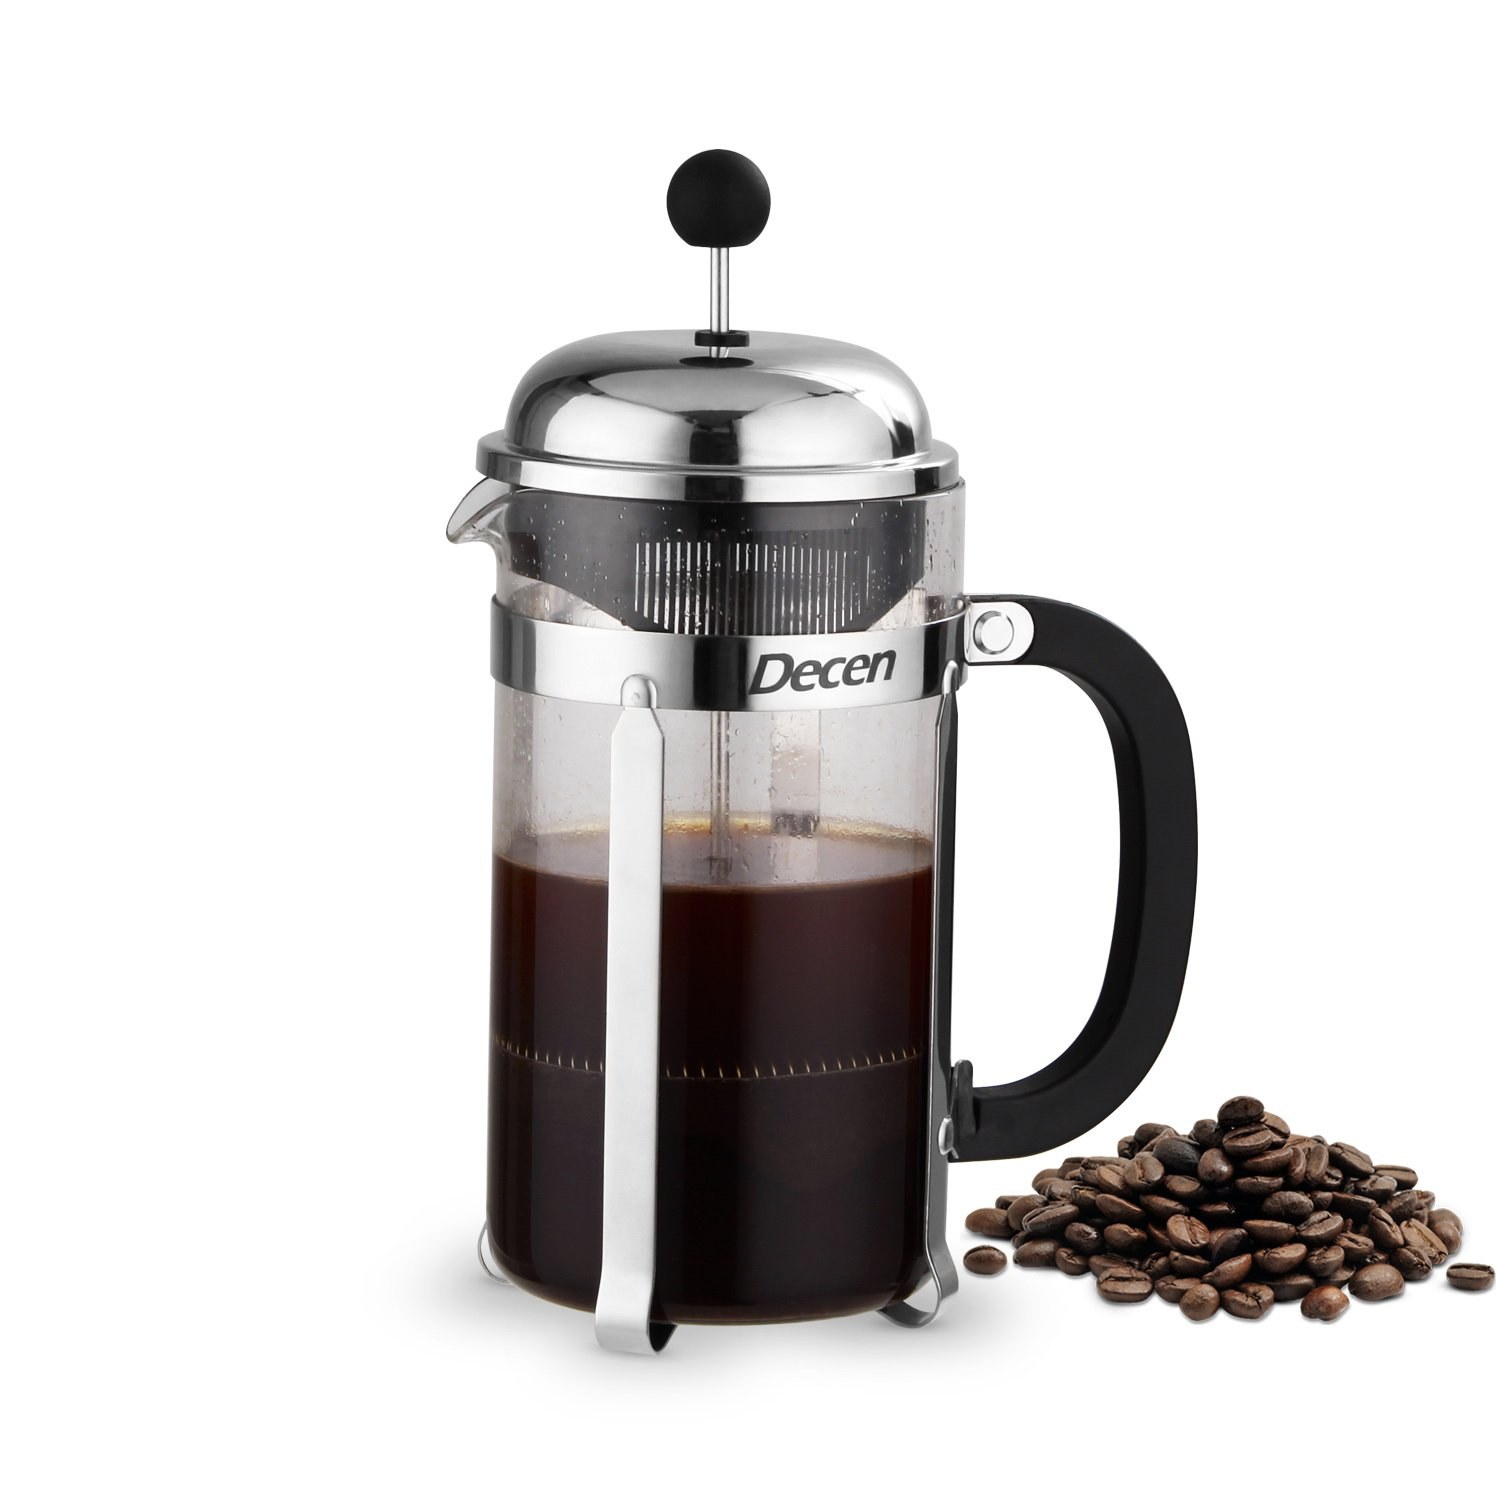 Decen Coffee Tea & Espresso Cafetières French Filter Coffee Press Plunger - 1.0L / 8 Cup